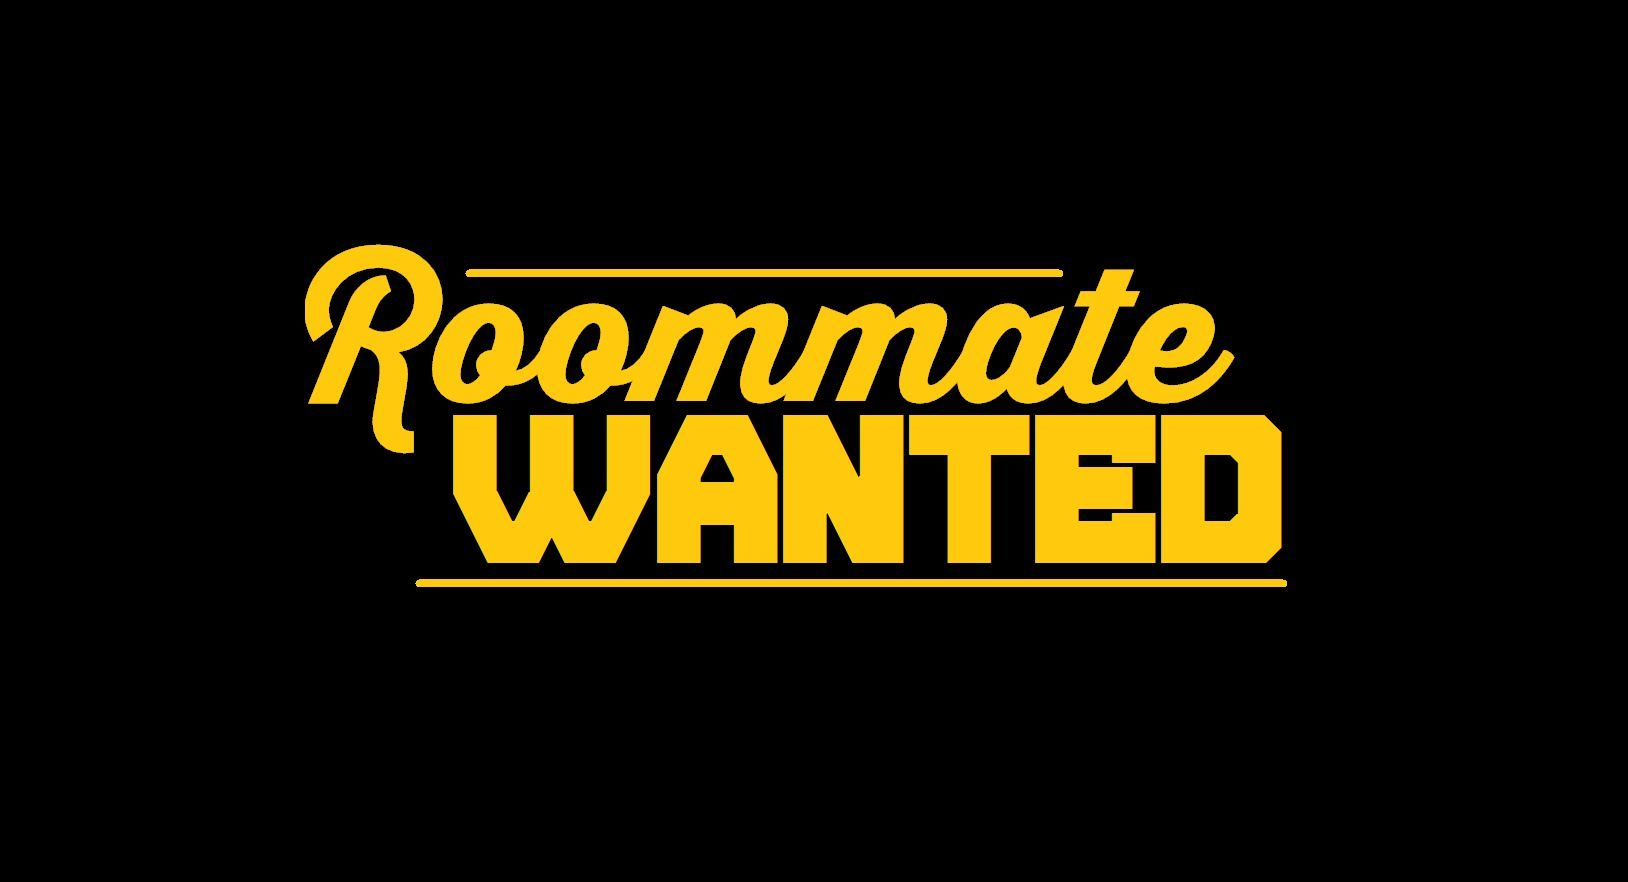 Do You Need Roommates Room Shares Flat Shares Apartment Shares In Your Close You Can Get Any Type Of Roommates Roommate Wanted Rooms For Rent Roommate